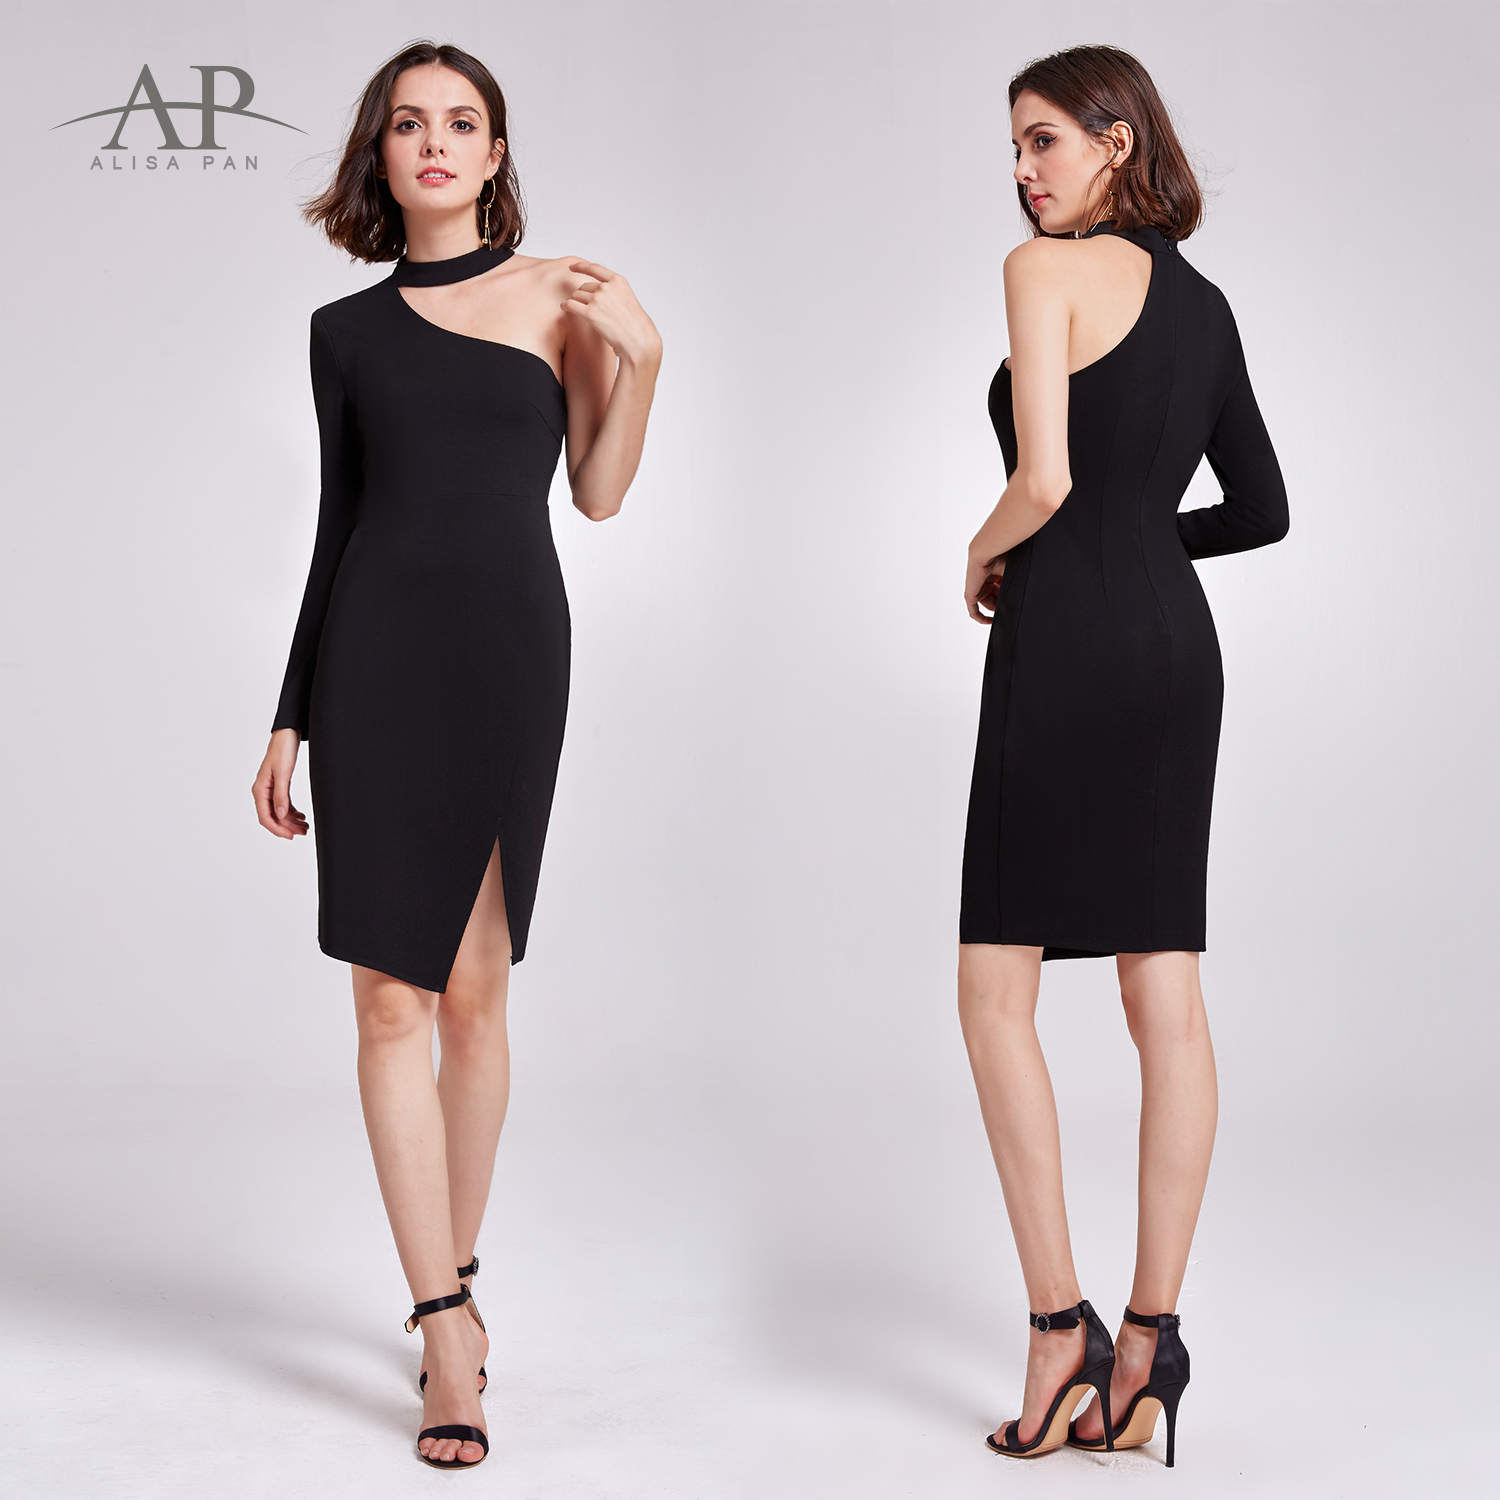 55f5e967a23f Alisa Pan Women Bodycon Black Dresses Midi Party Evening Club 05940 ...